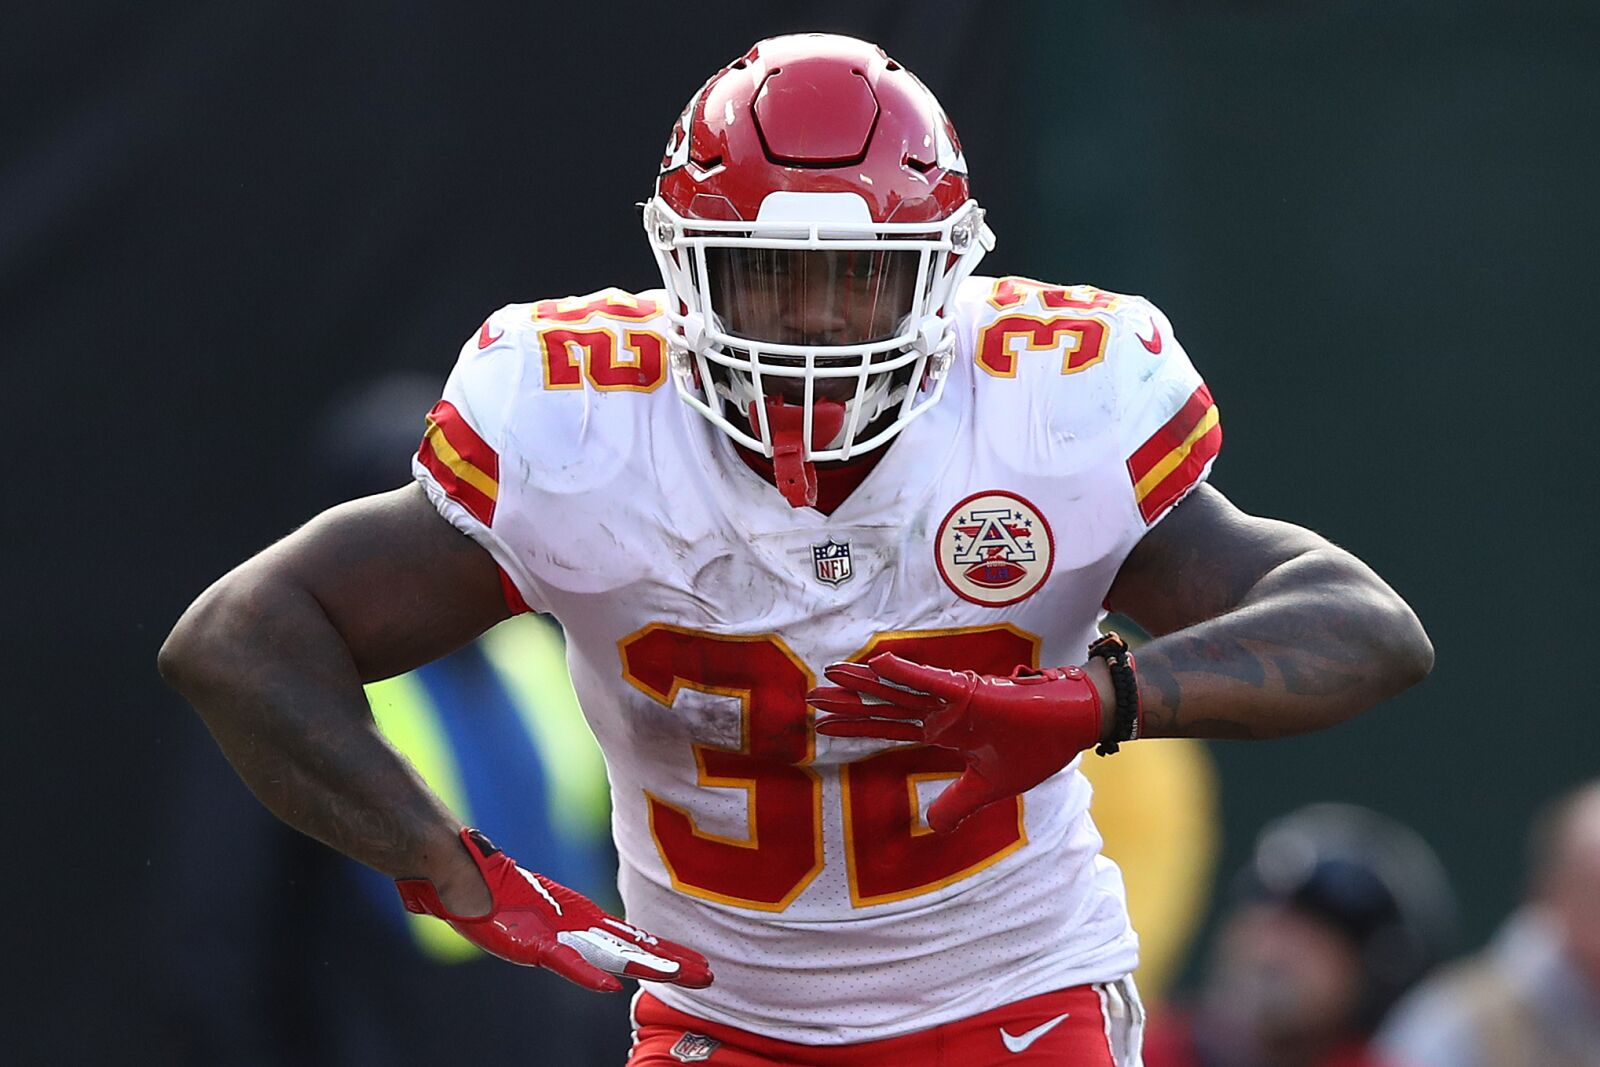 Spencer Ware plans to still play in 2019 for another team besides Colts